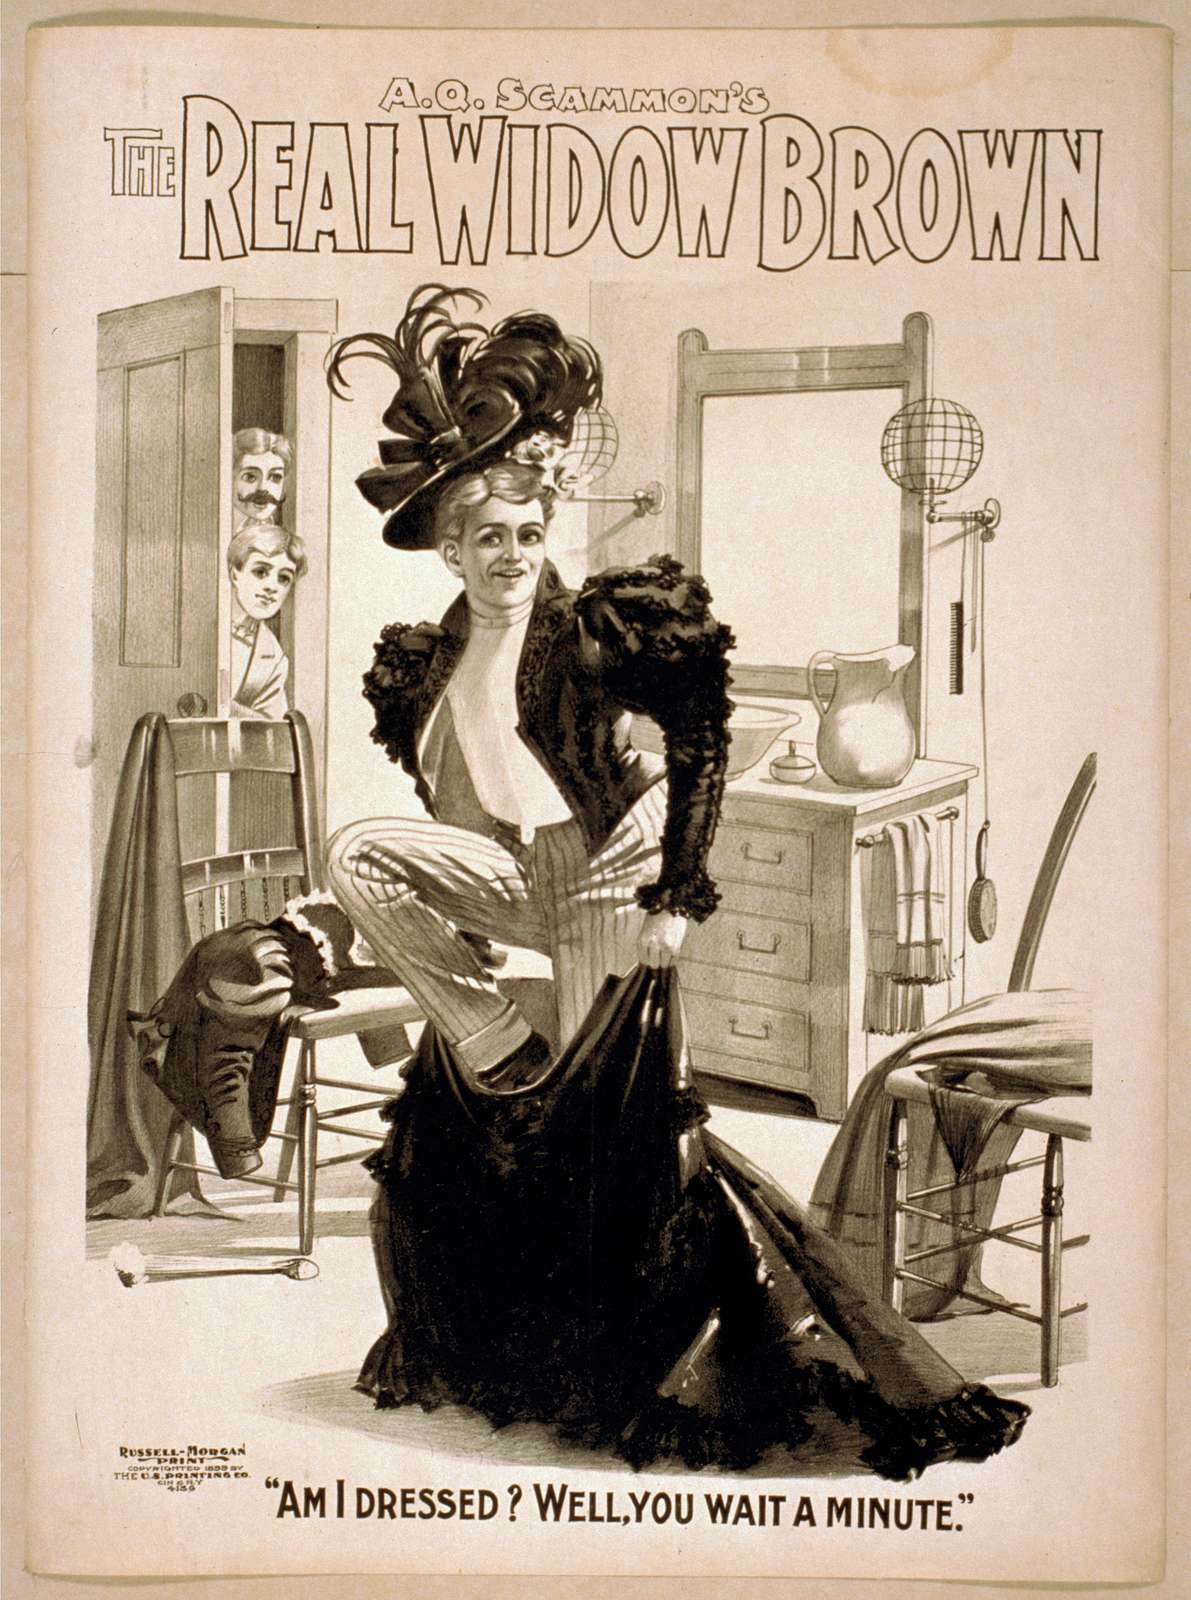 A.Q. Scammon's The real Widow Brown